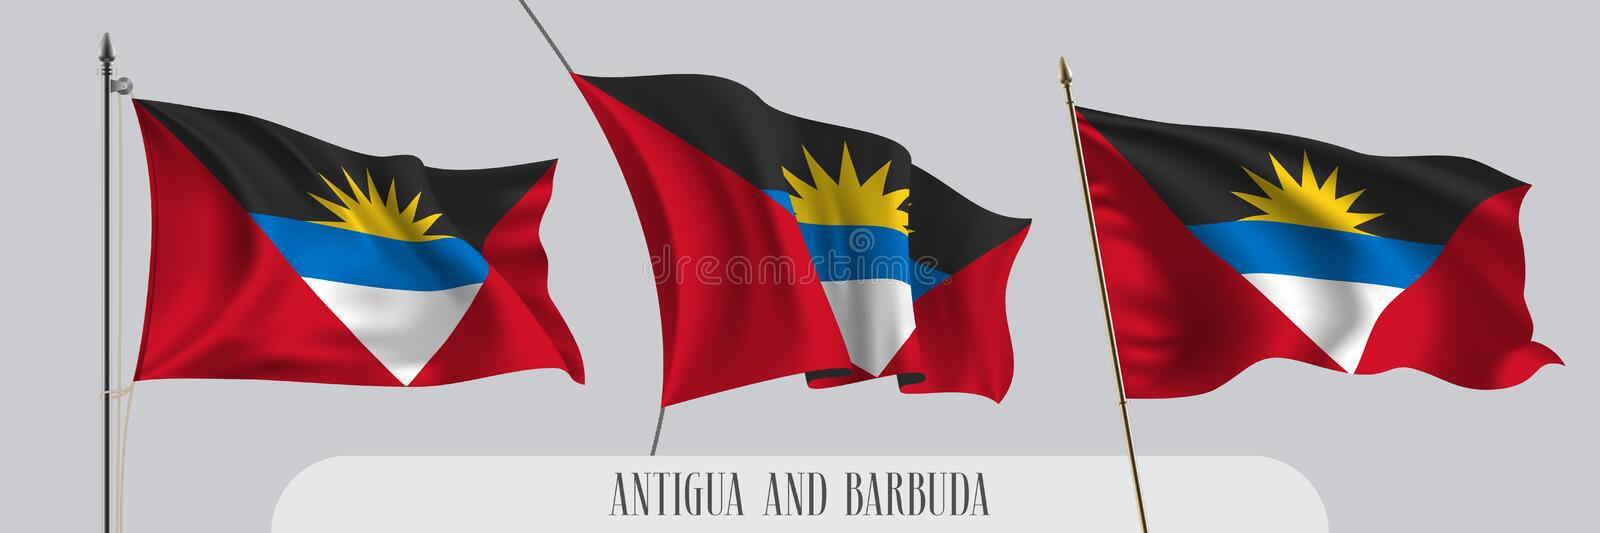 Placez du drapeau de ondulation de l'Antigua-et-Barbuda sur l'illustration d'isolement de vecteur de fond illustration libre de droits